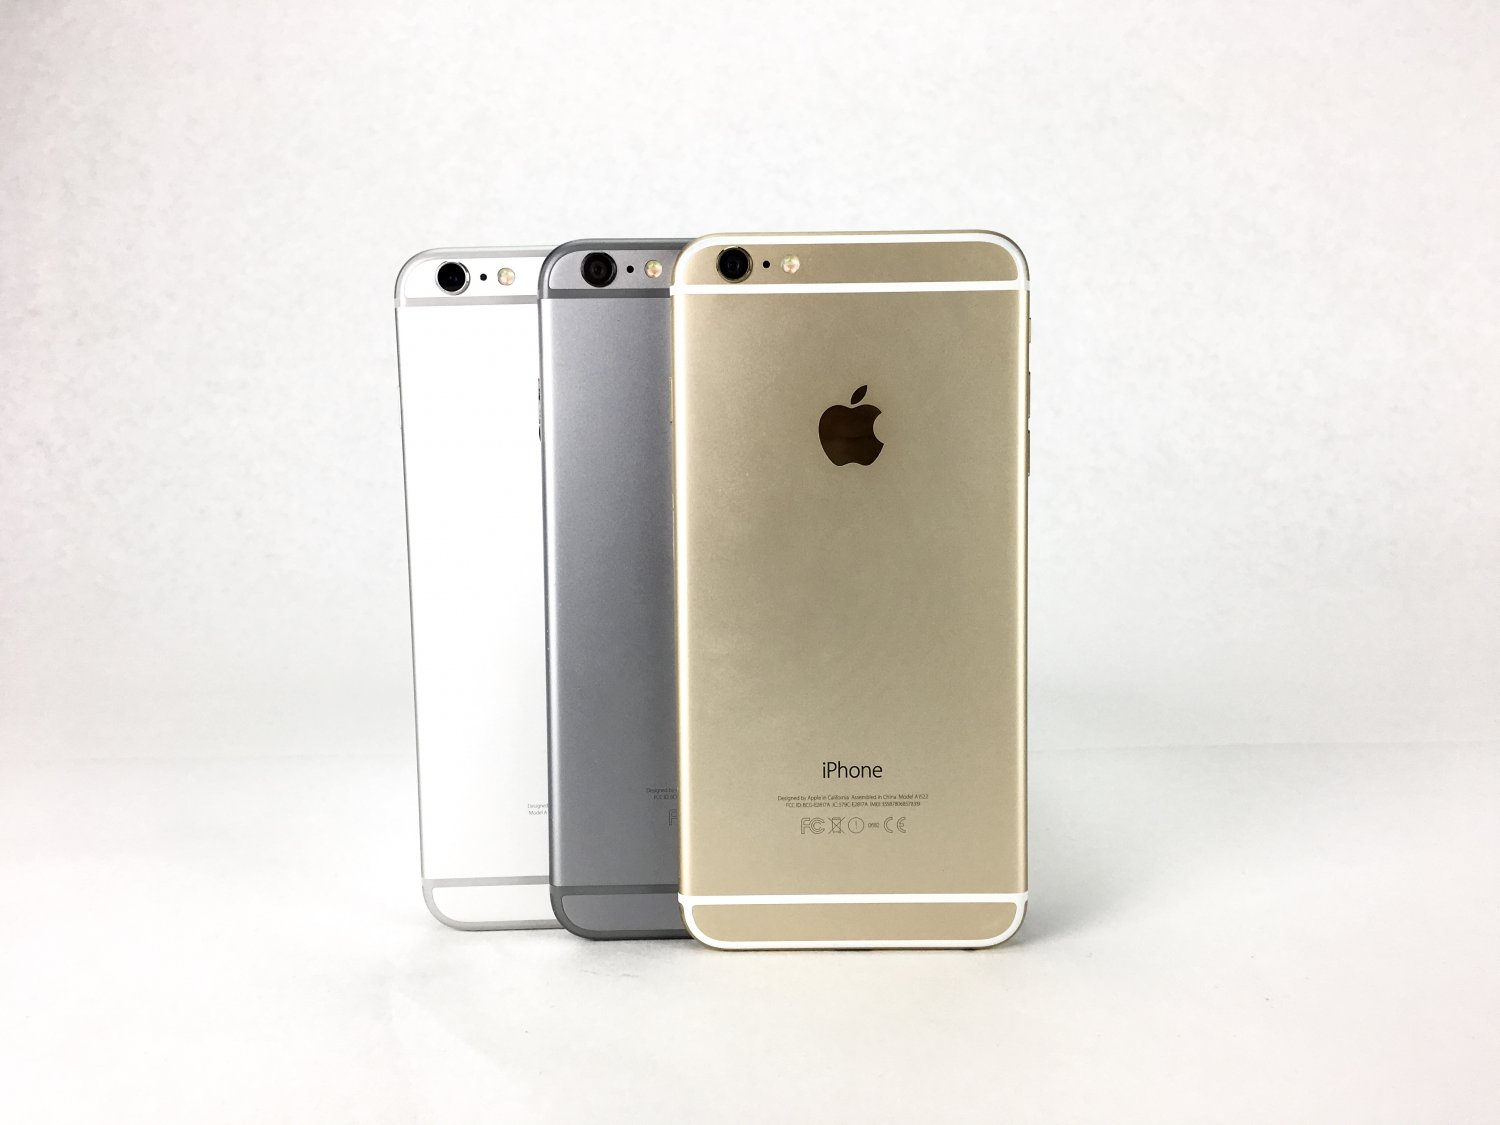 Apple AT&T IPhone 6 Plus 16/64/128 GB - Gray/Gold/Silver (Excellent) + Warranty